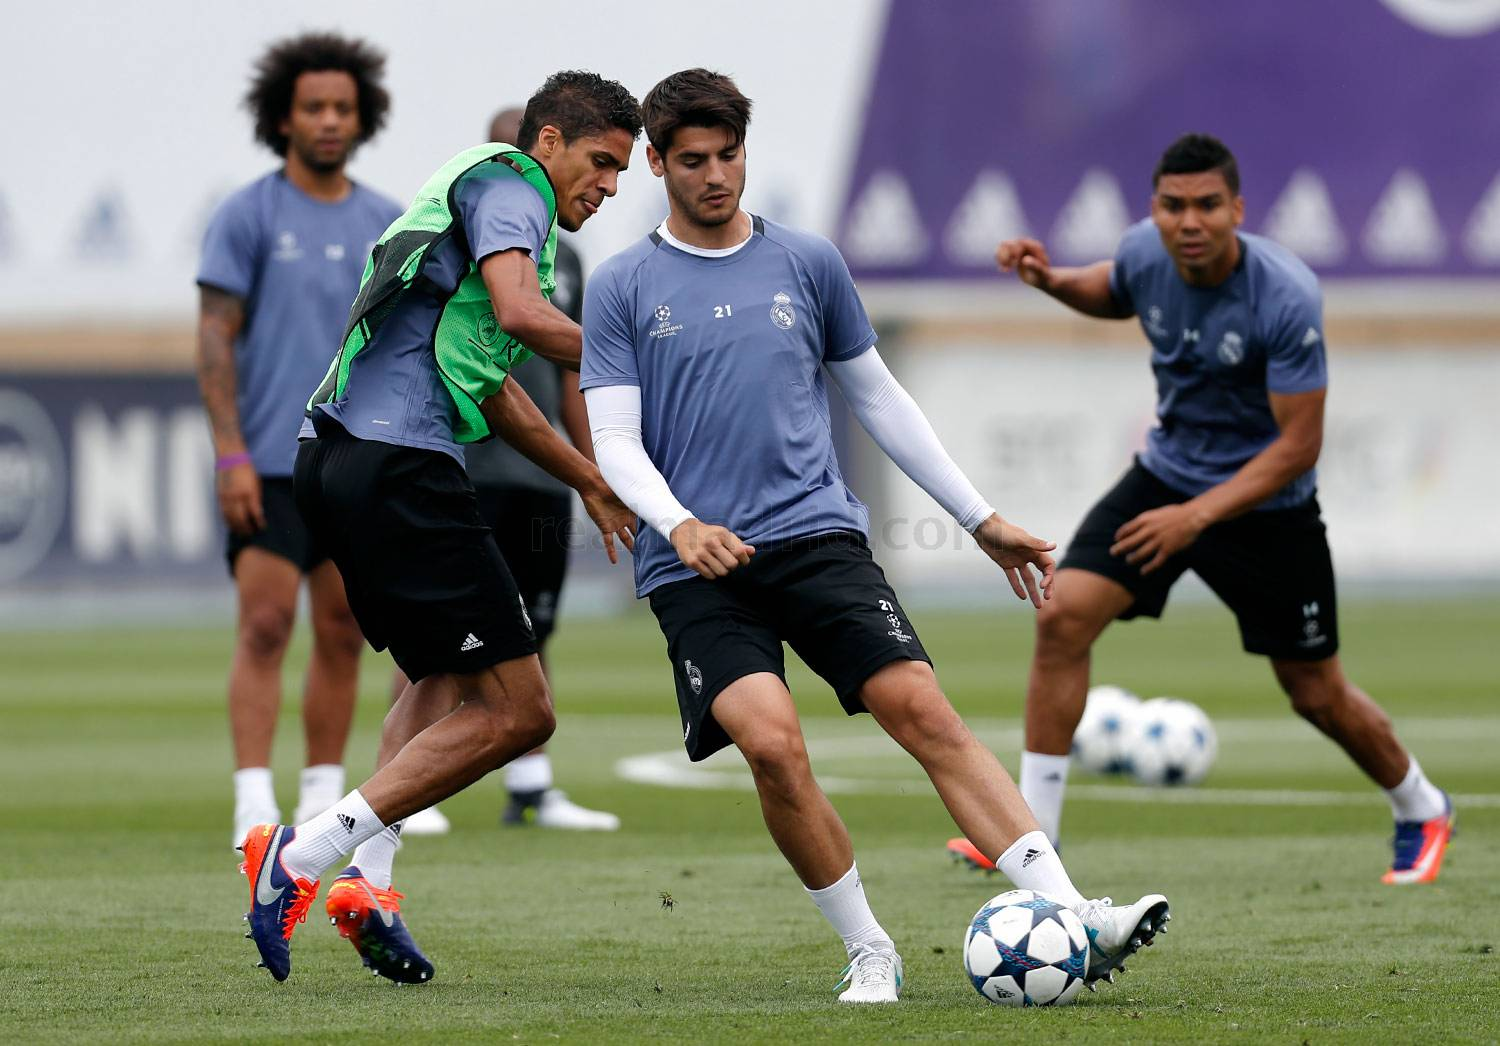 Real Madrid - Entrenamiento del Real Madrid - 30-05-2017